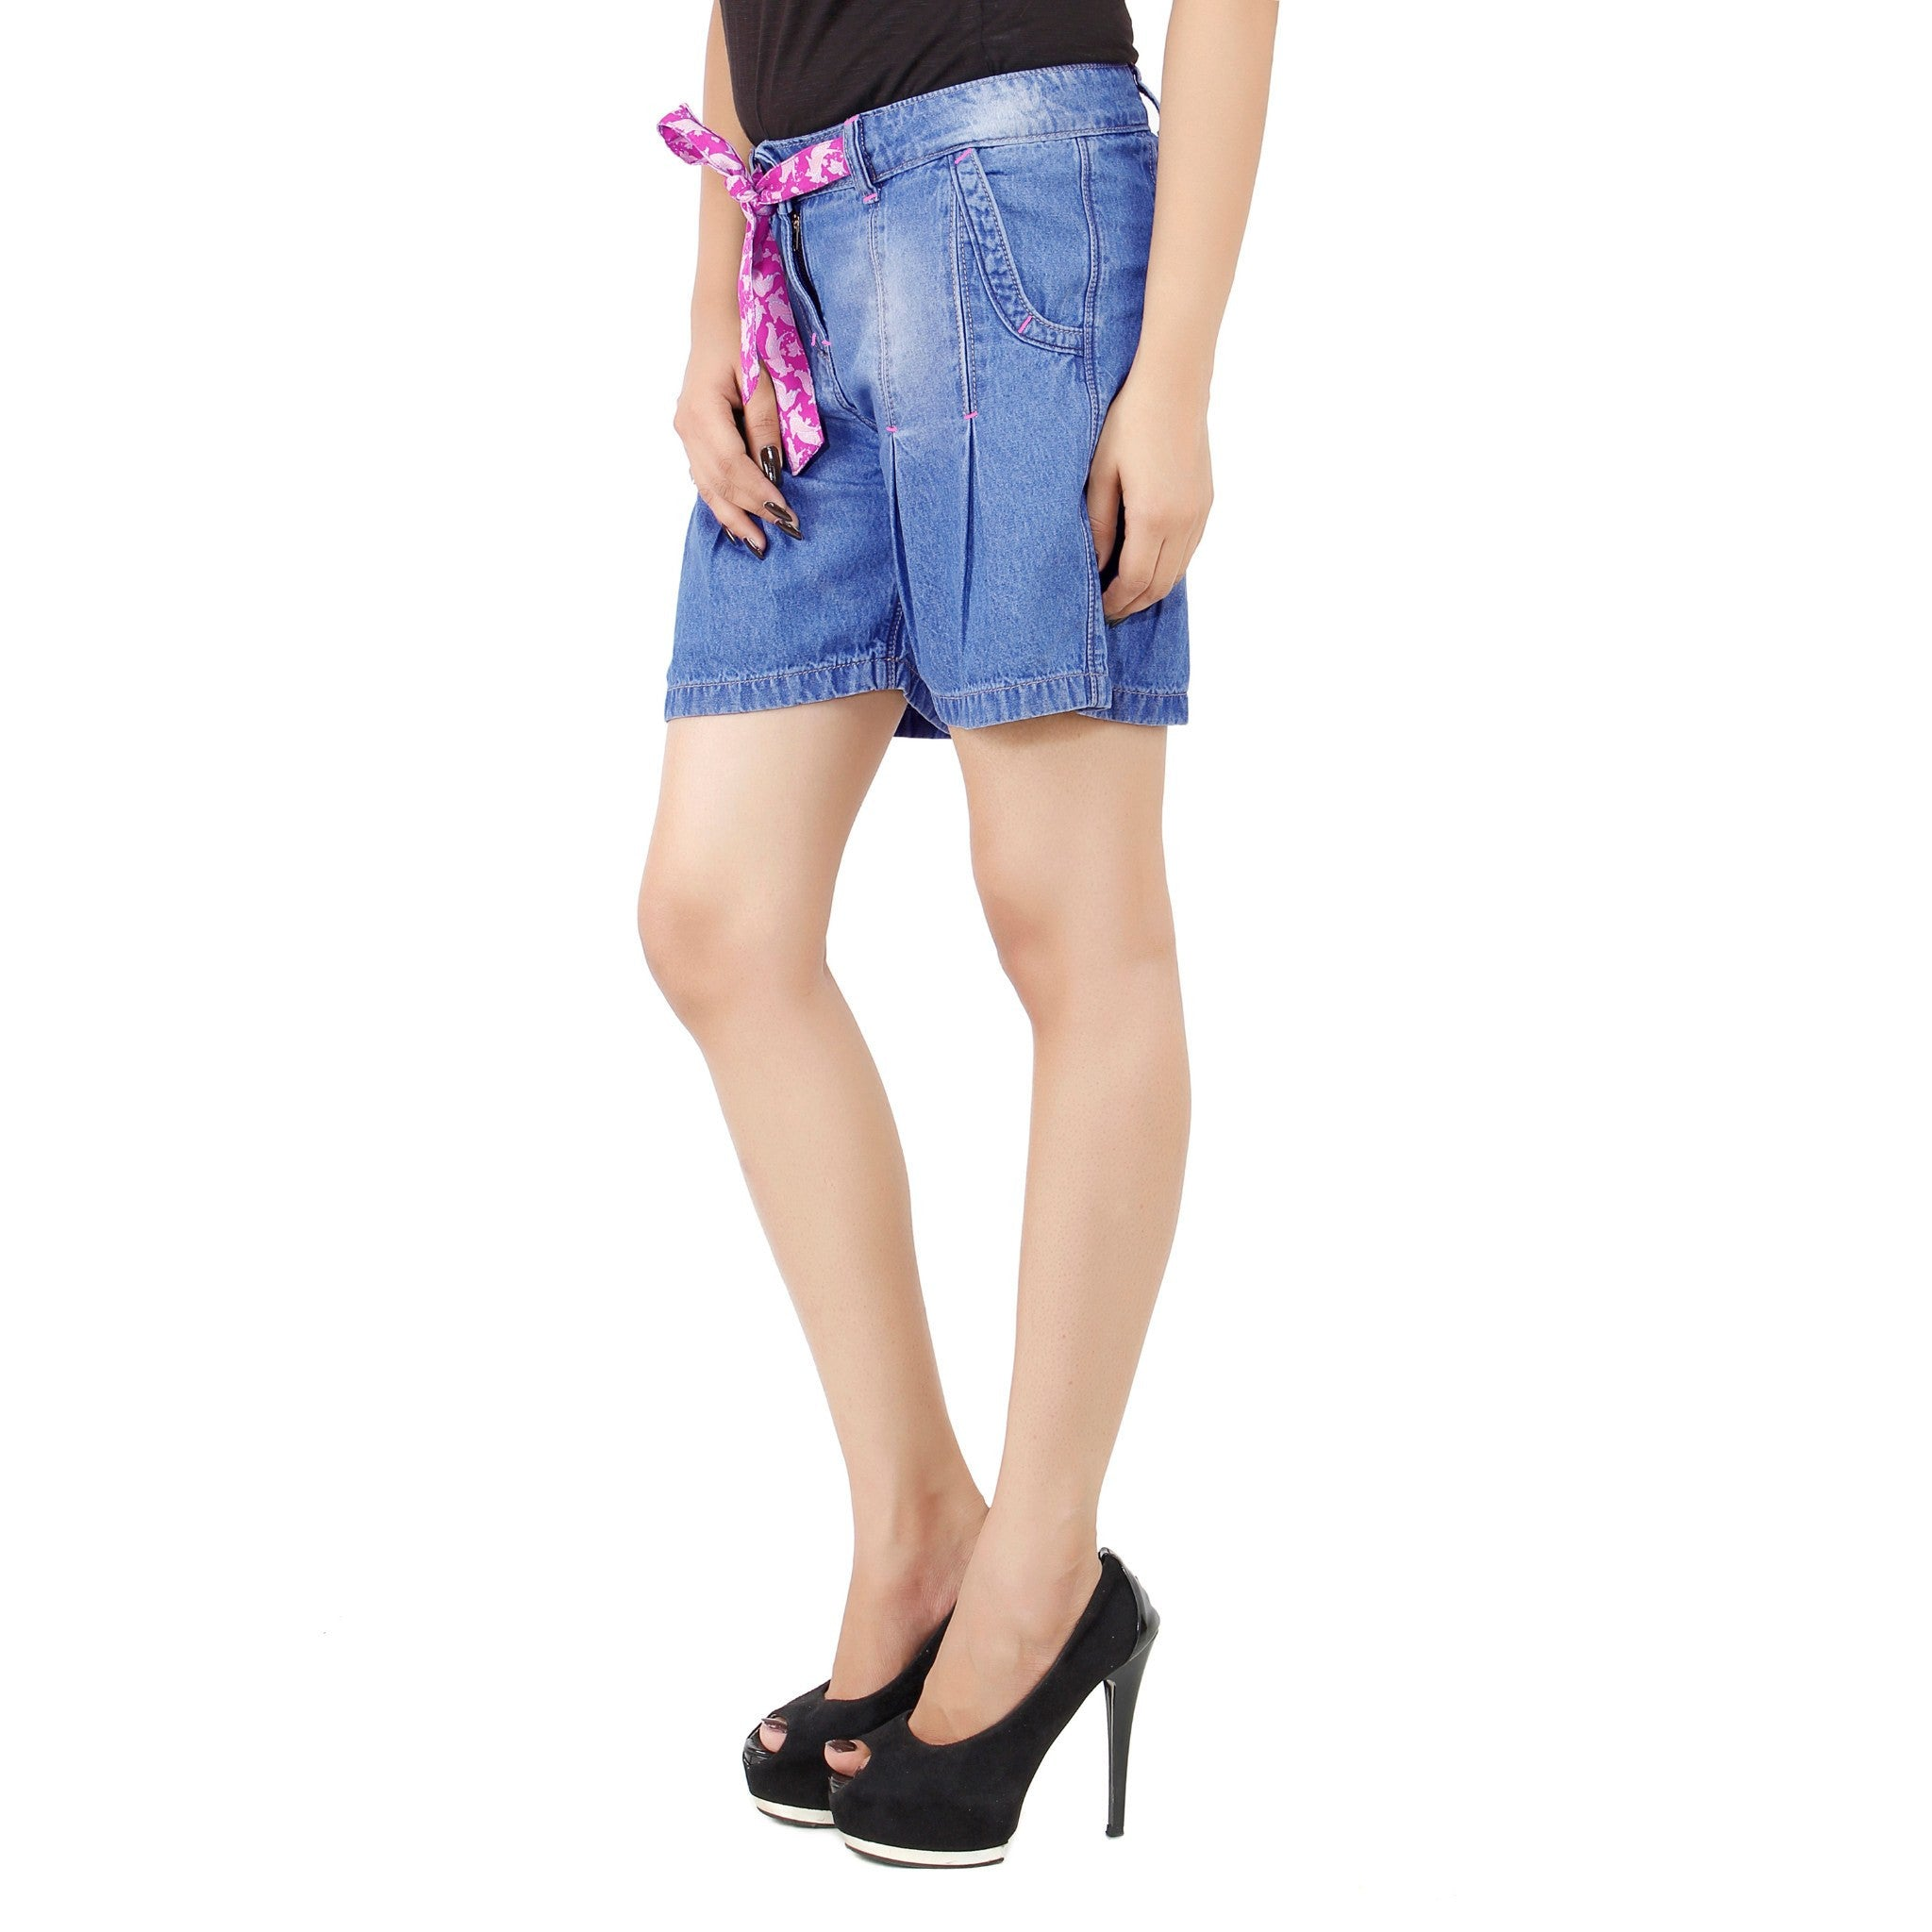 Cornflower Blue Denim Short For Women left side view